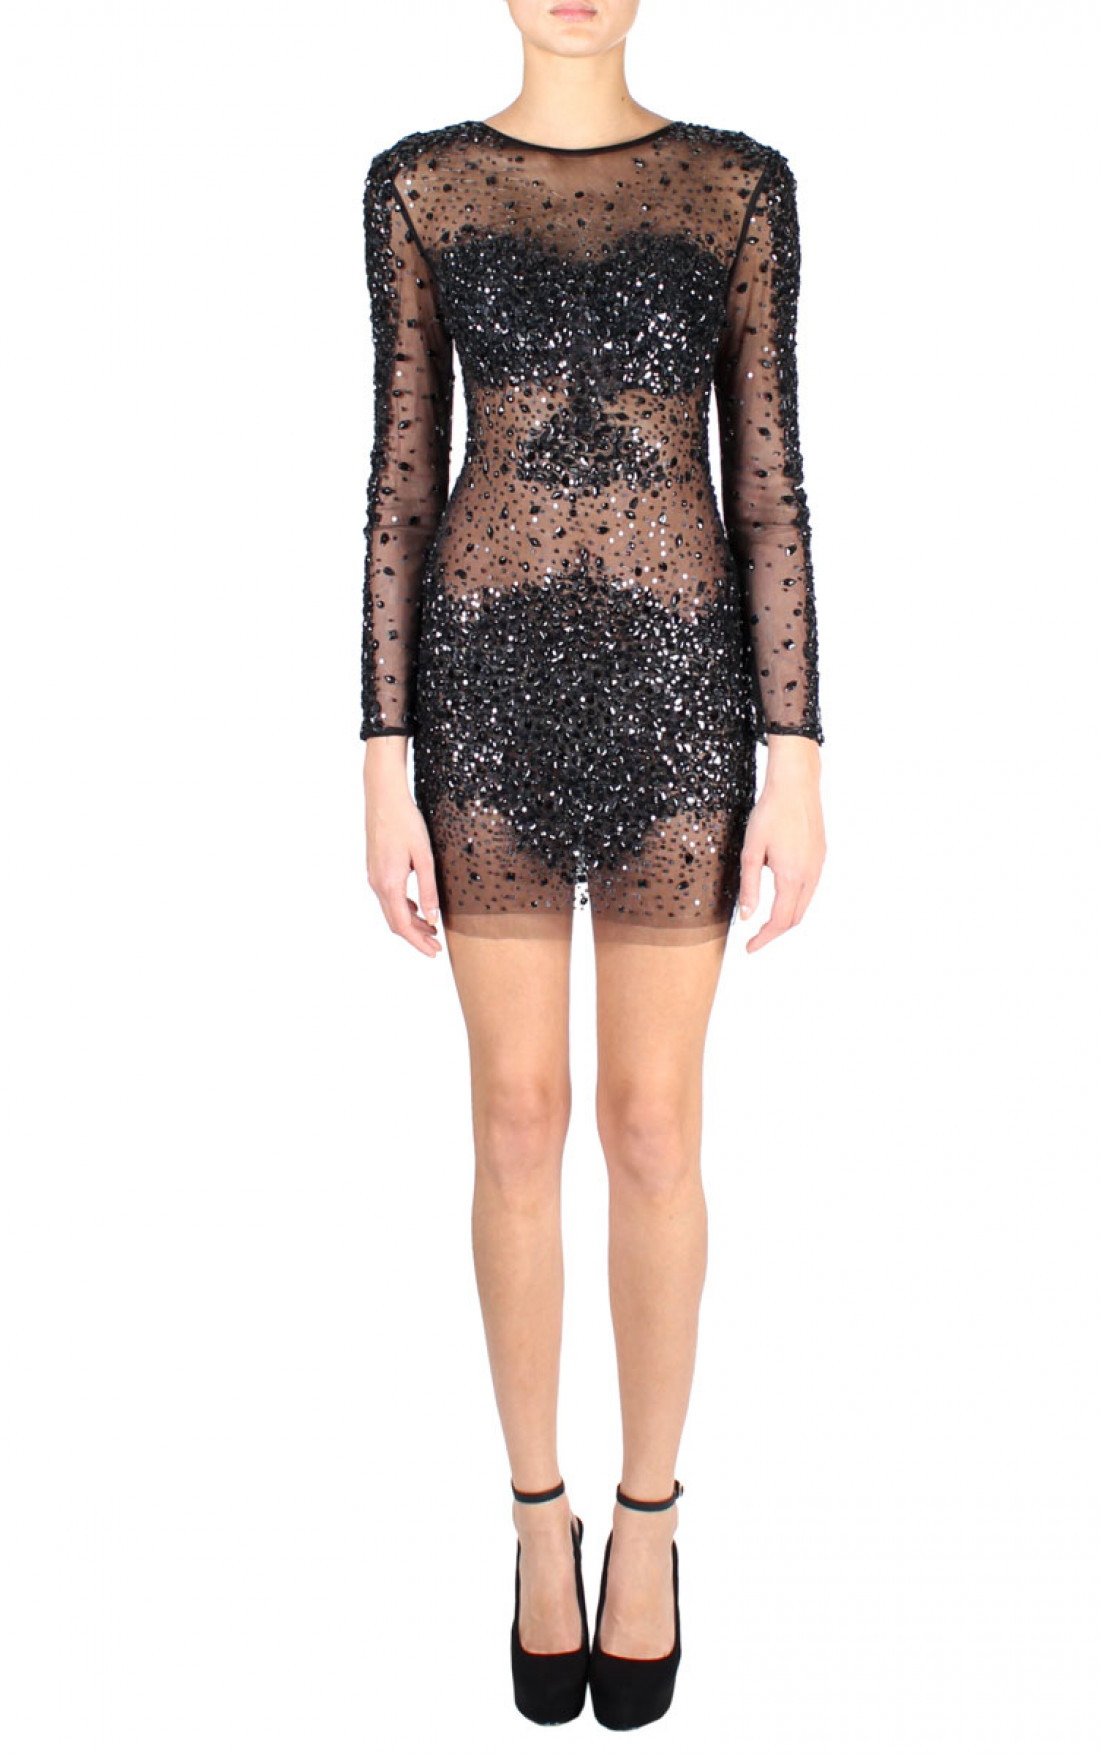 Jovani - Sheer Stone Embellished Short Dress Black Front (7757A)